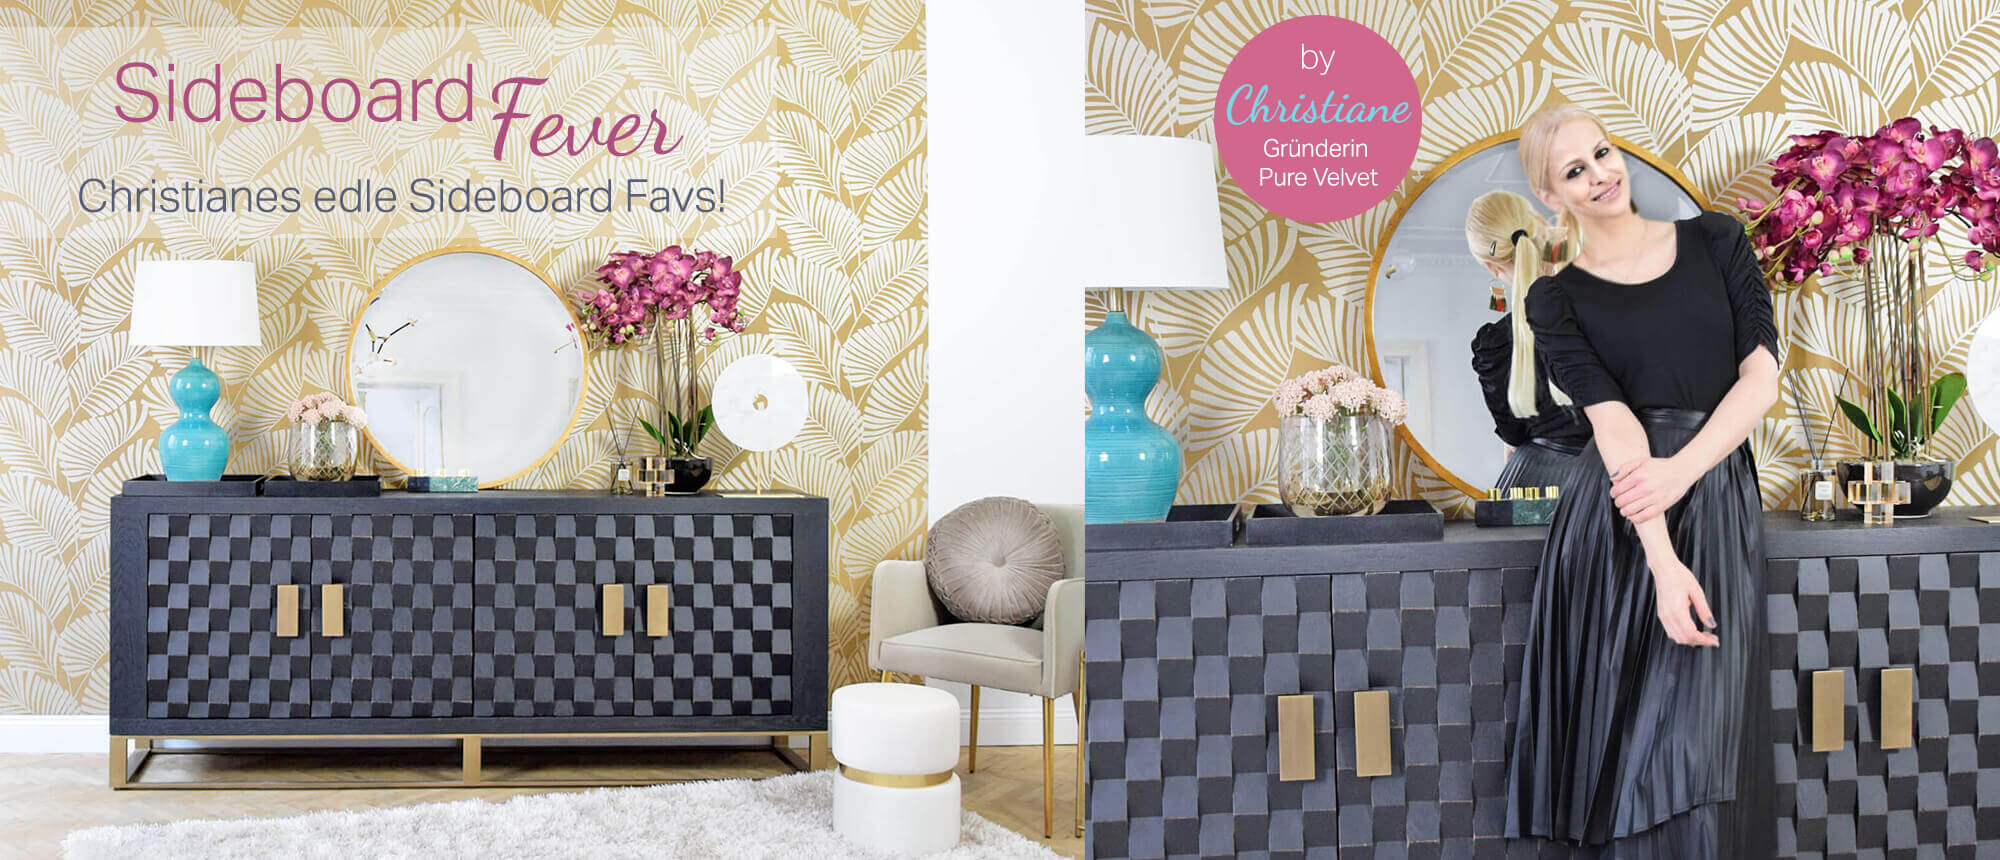 Sideboard Fever by Christiane